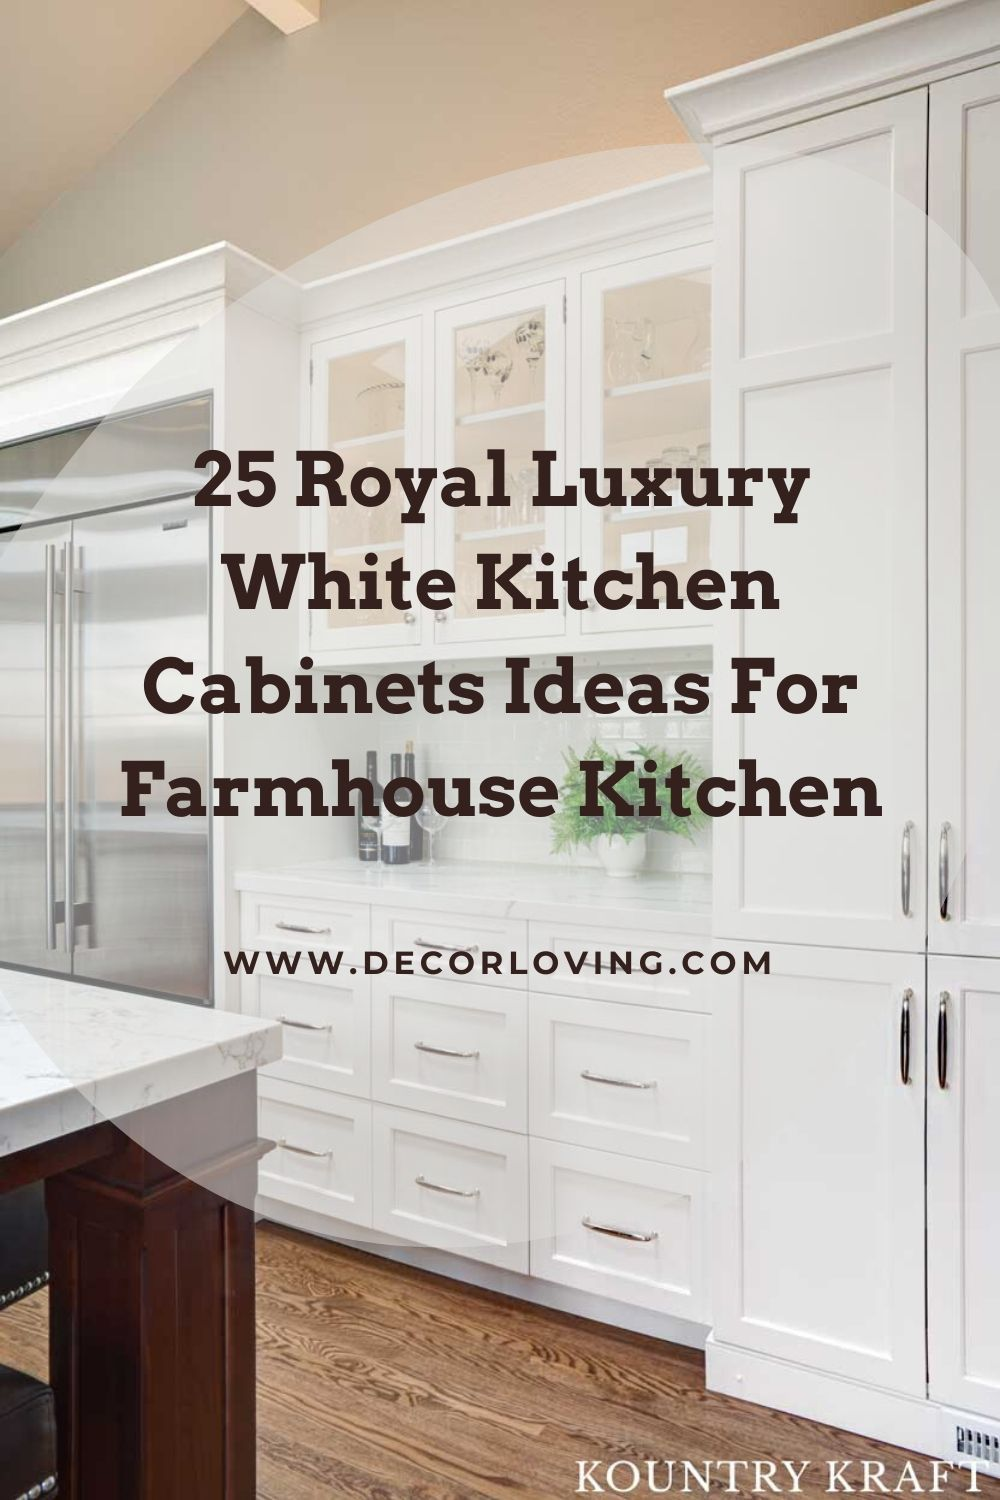 25 Royal Luxury White Kitchen Cabinets Ideas For Farmhouse Kitchen In 2020 Kitchen Cabinets White Kitchen Cabinets White Kitchen